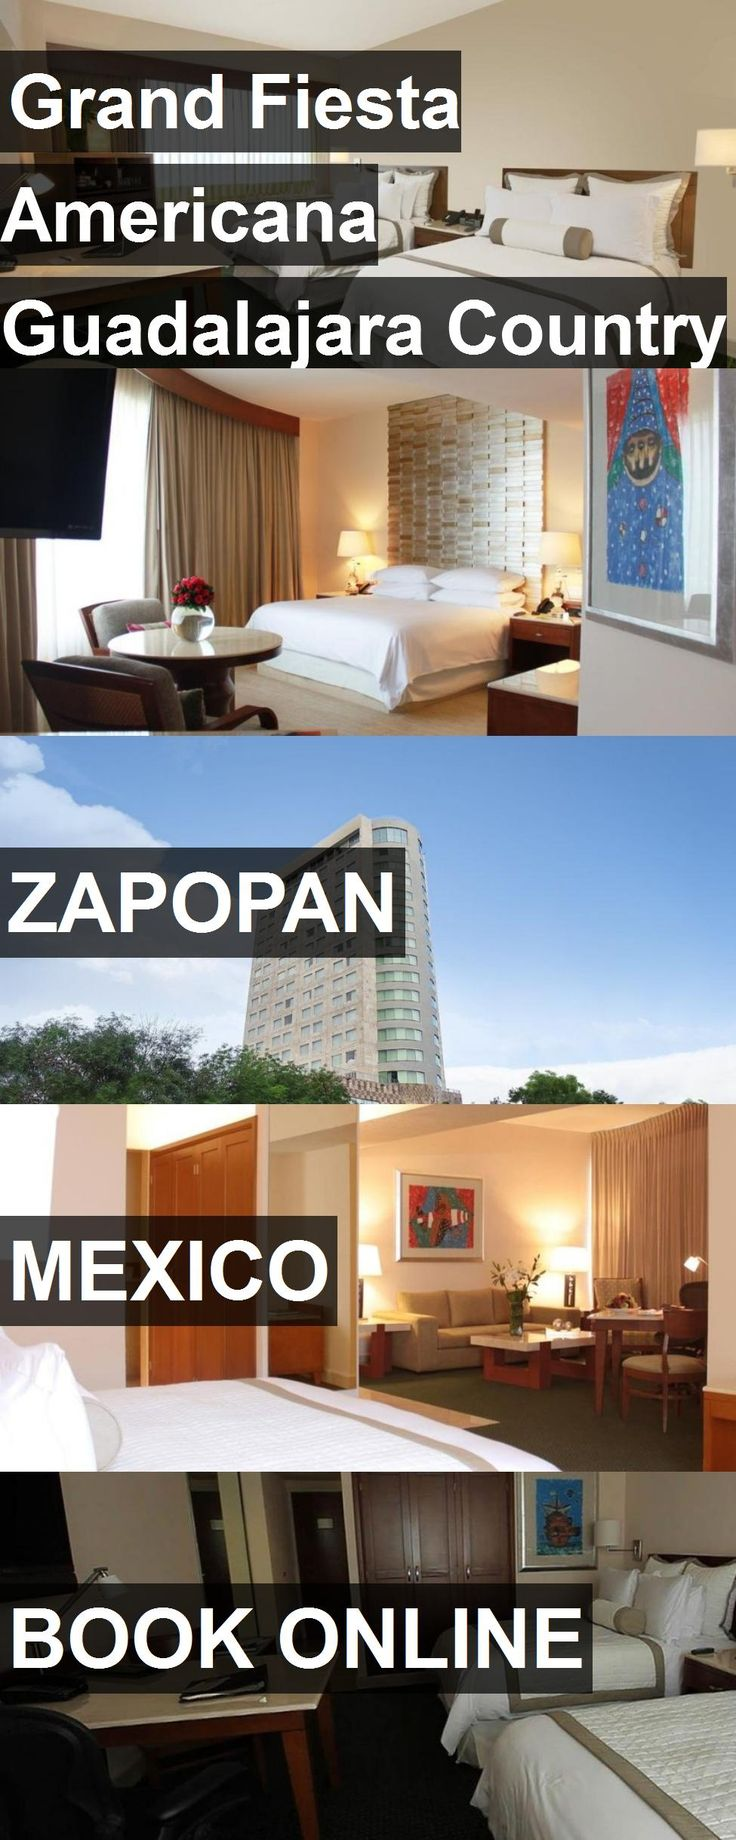 Hotel Grand Fiesta Americana Guadalajara Country Club in Zapopan, Mexico. For more information, photos, reviews and best prices please follow the link. #Mexico #Zapopan #travel #vacation #hotel